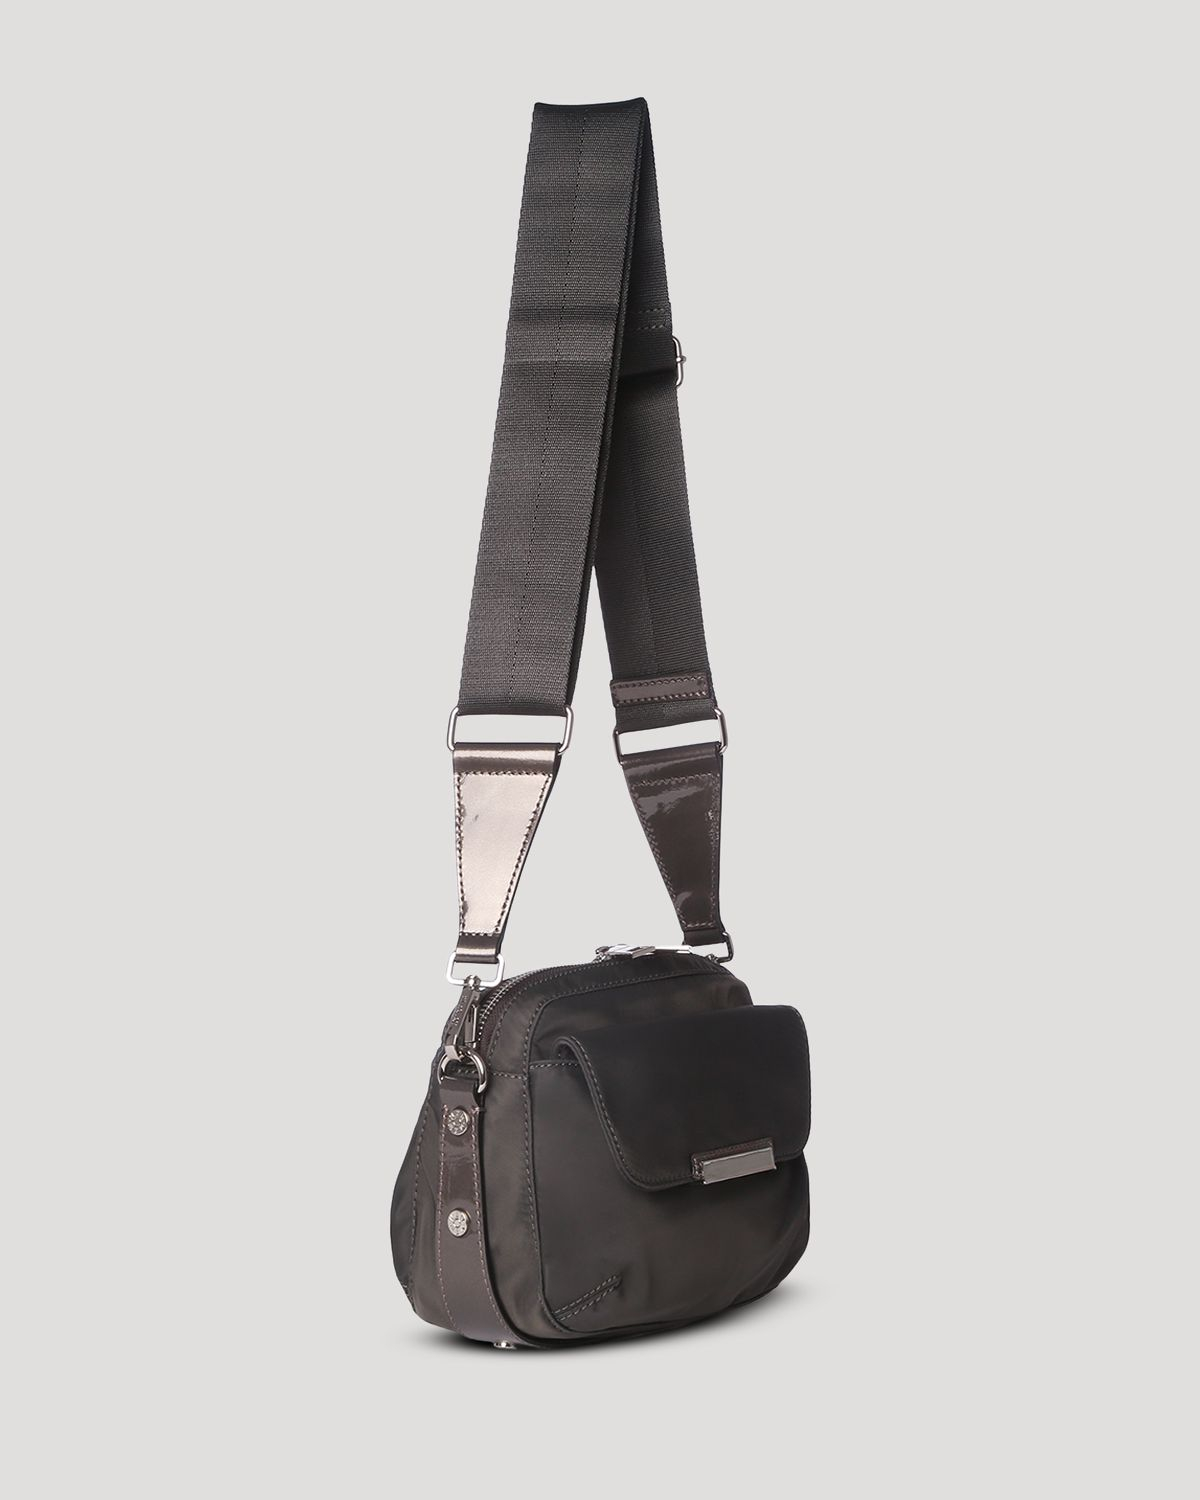 MZ Wallace Convertible Crossbody - Cleo Small Bedford in Steel (Grey)